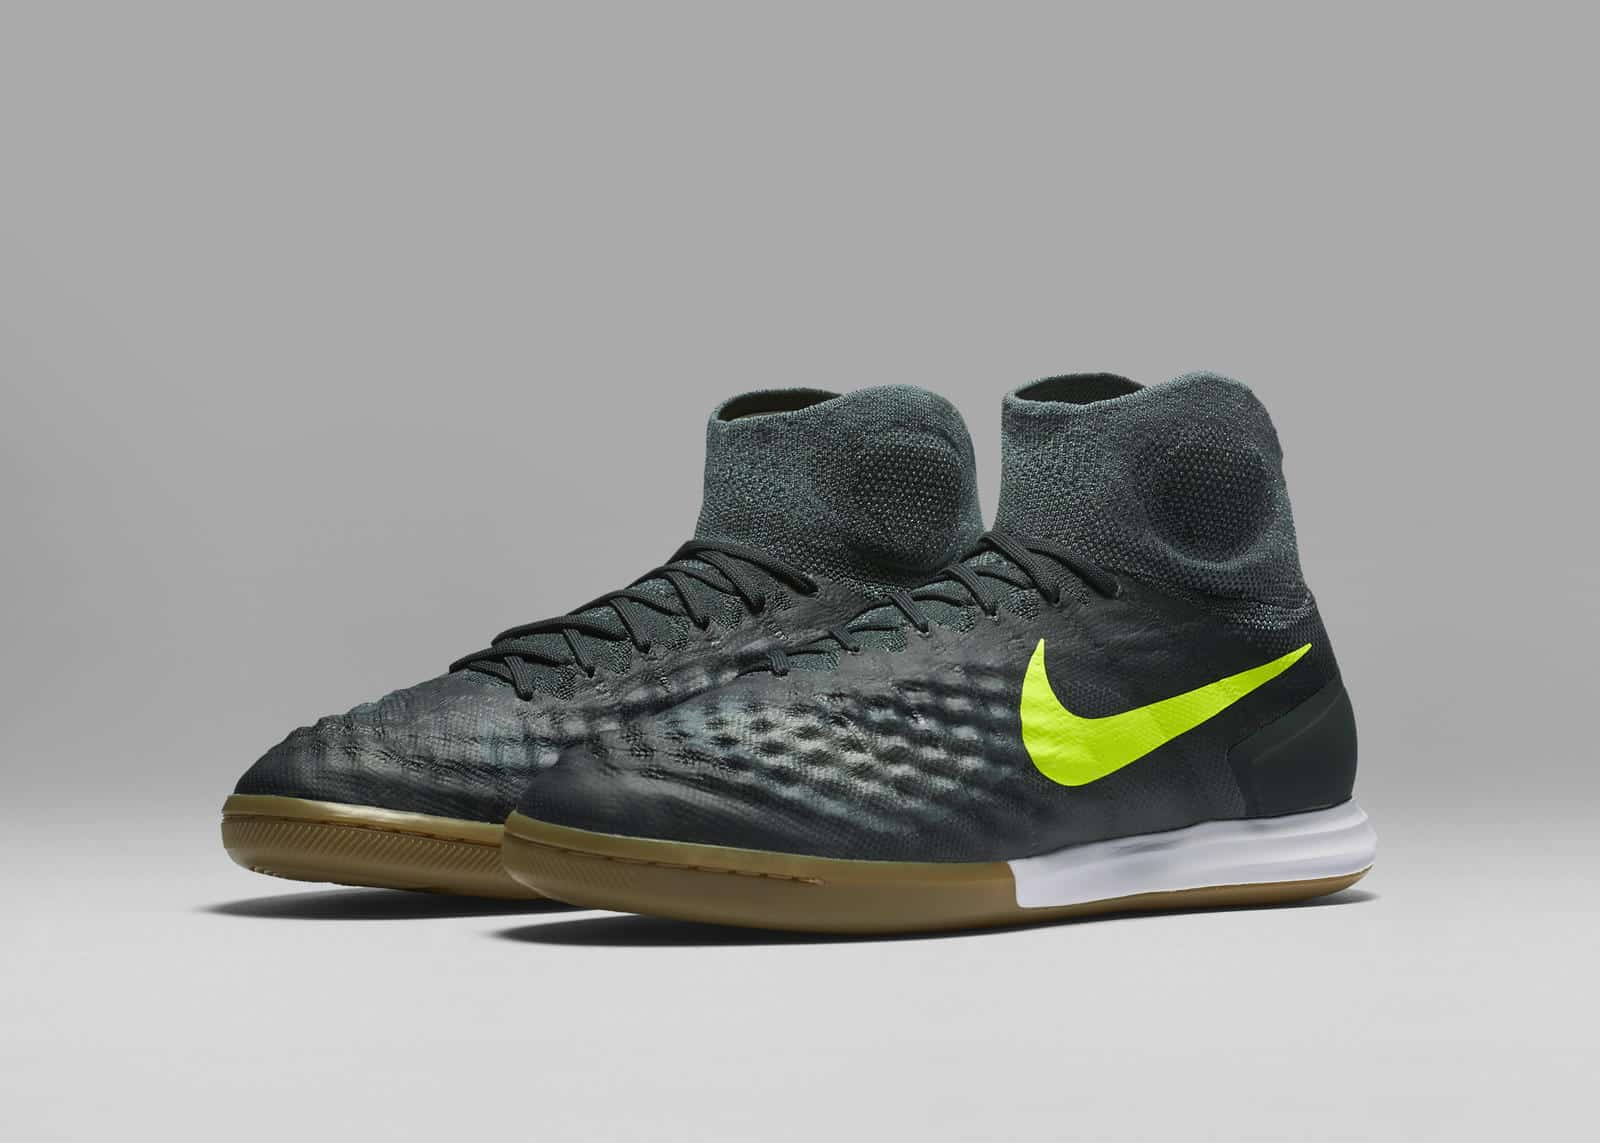 chaussure-football-nike-magistax-futsal-pack-floodlights-2016-3